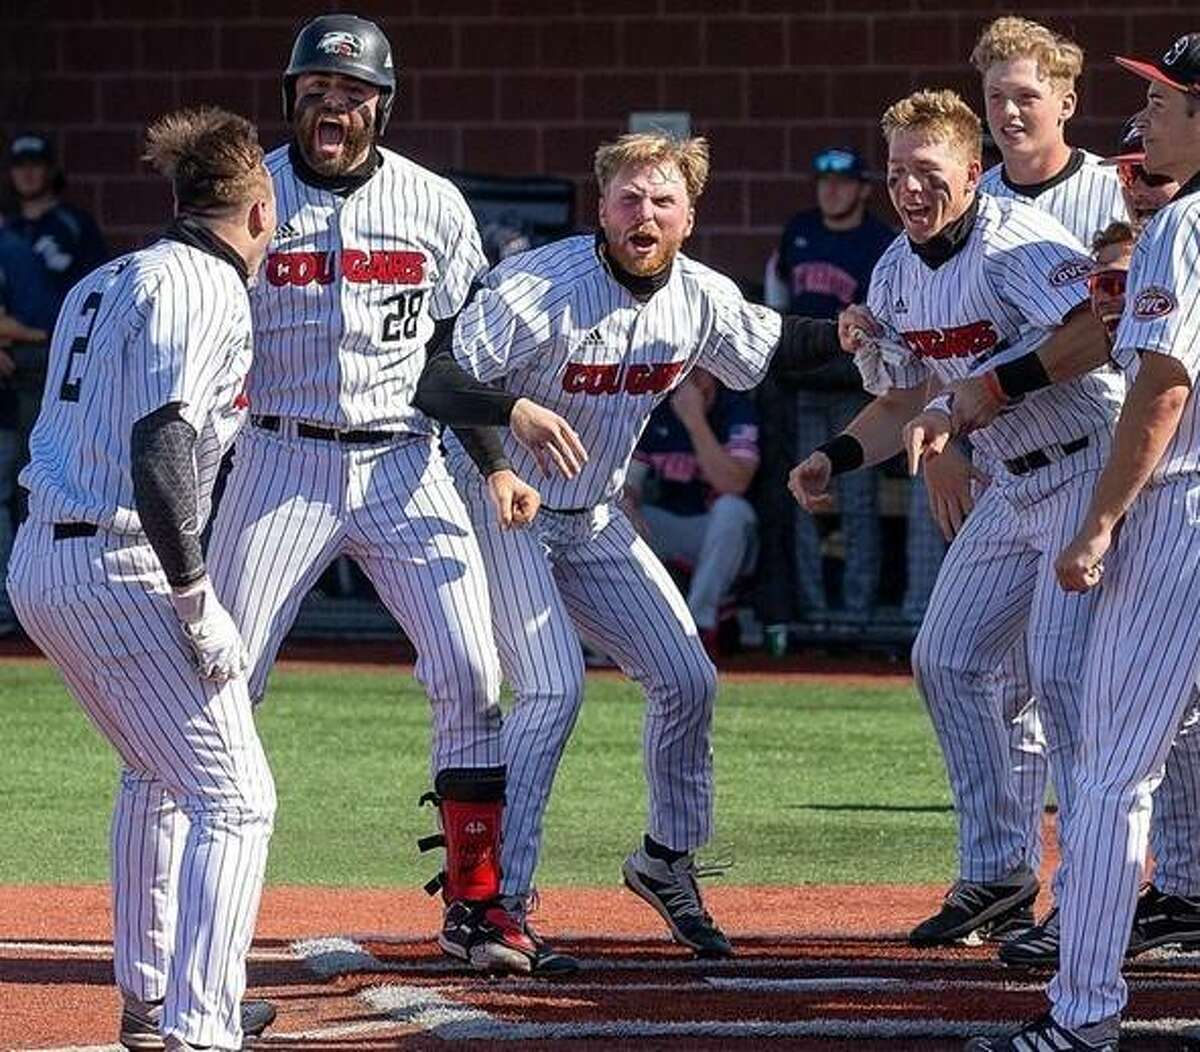 SIUE's Brady Bunten, center, gets set to touch home after his walk-off homer in the 10th inning of the first game of a doubleheader sweep of UT Martin Friday at SIUE.